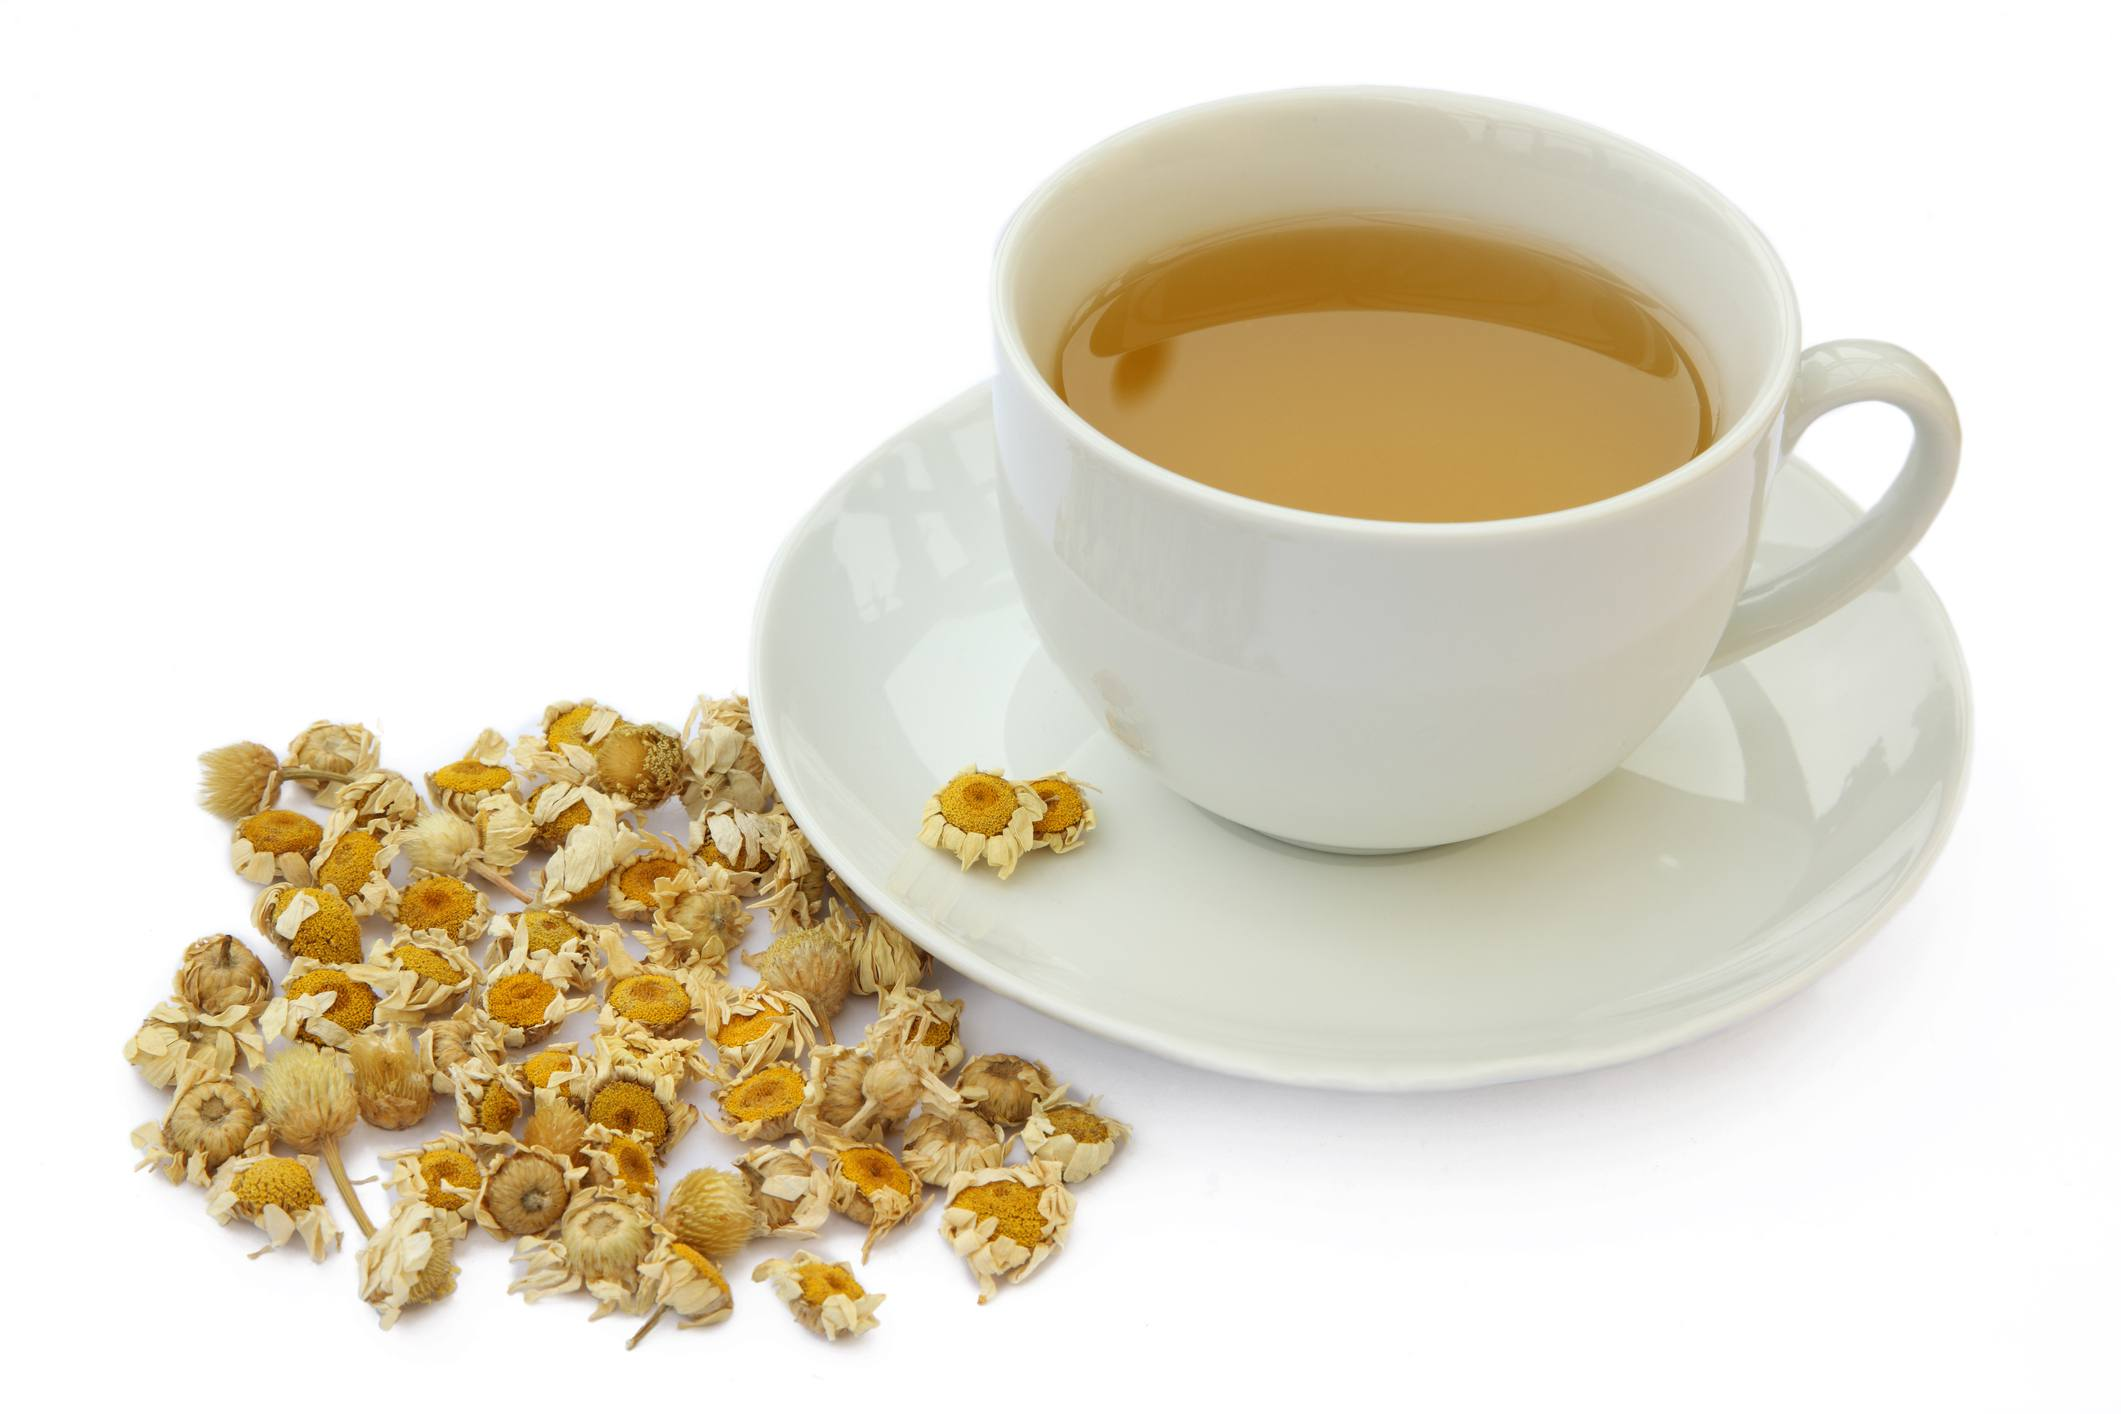 Cup of camomile tea with dried camomile flowers